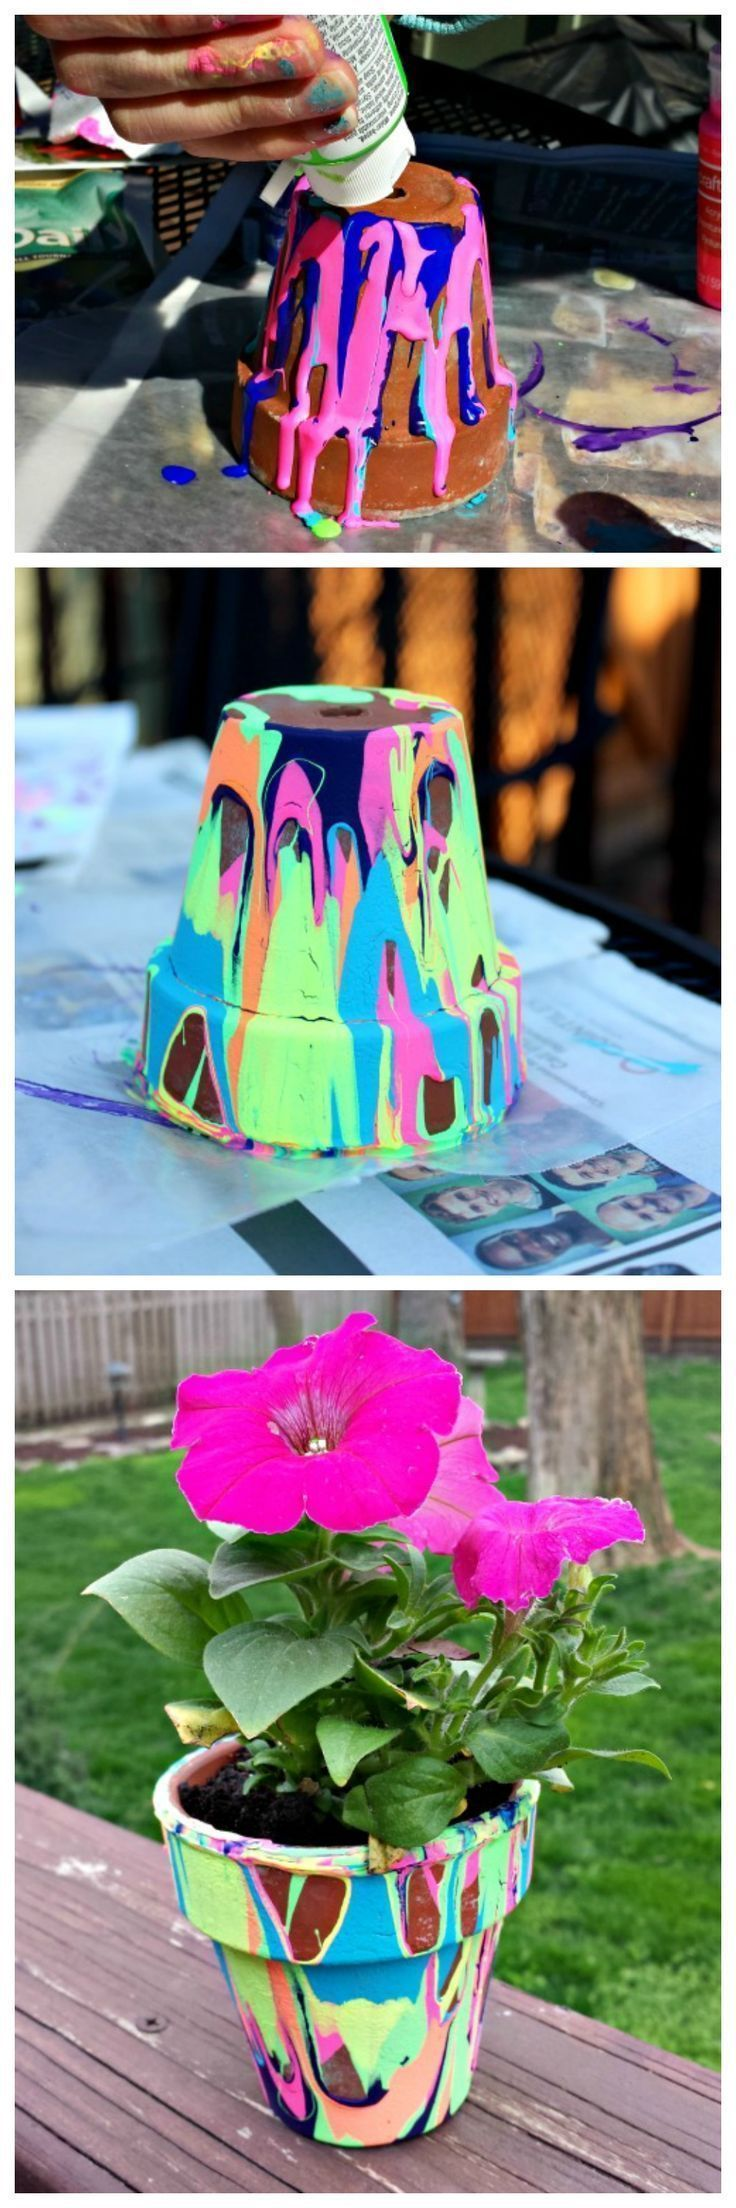 best ideas about mothers day crafts mother s day craft ideas for kids mothers day or teacher appreciation gift